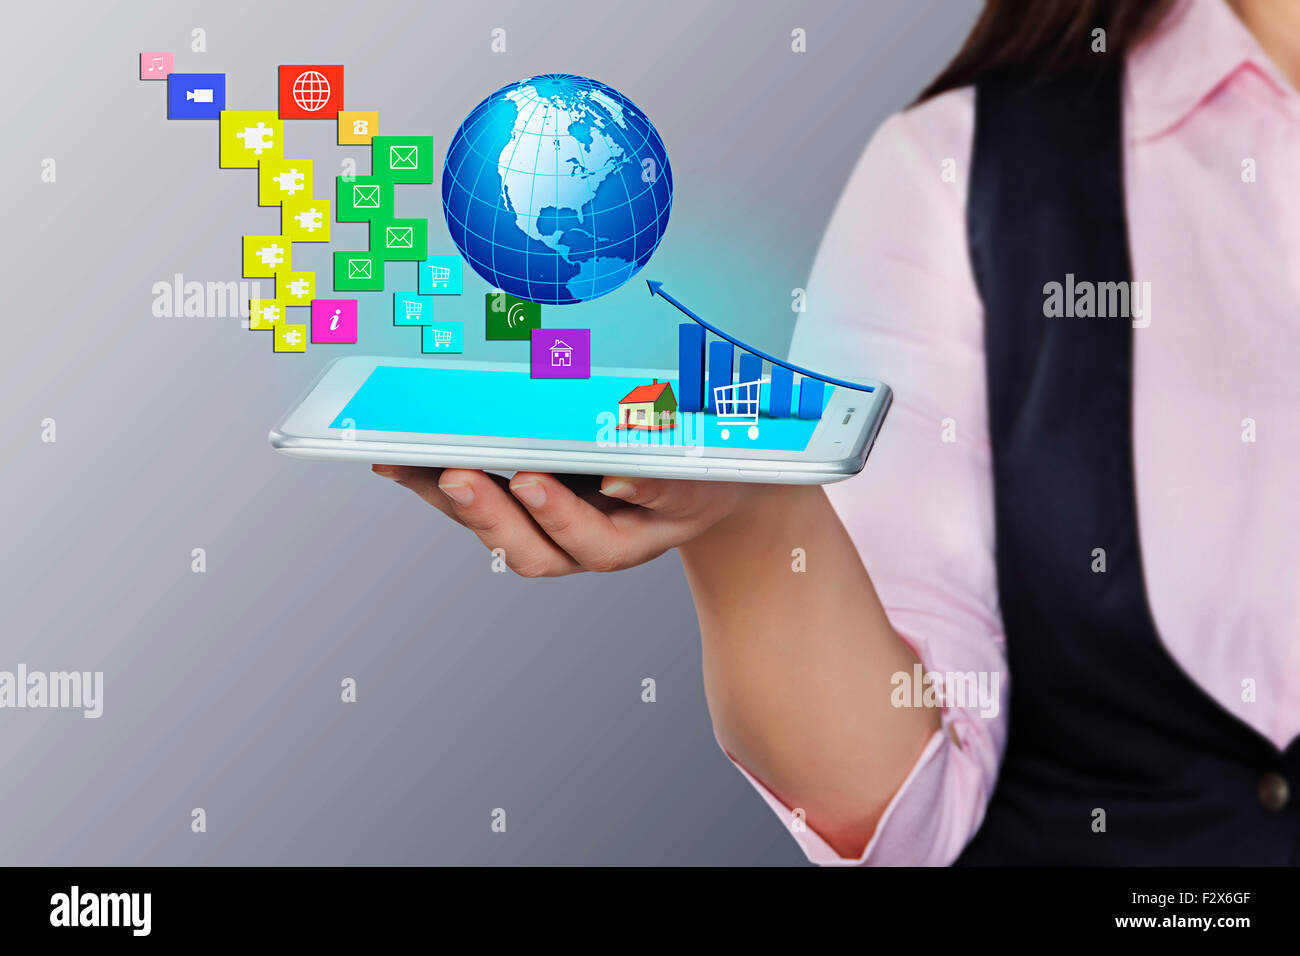 1 Business woman Digital Tablet Technology Digitally Enhanced - Stock Image